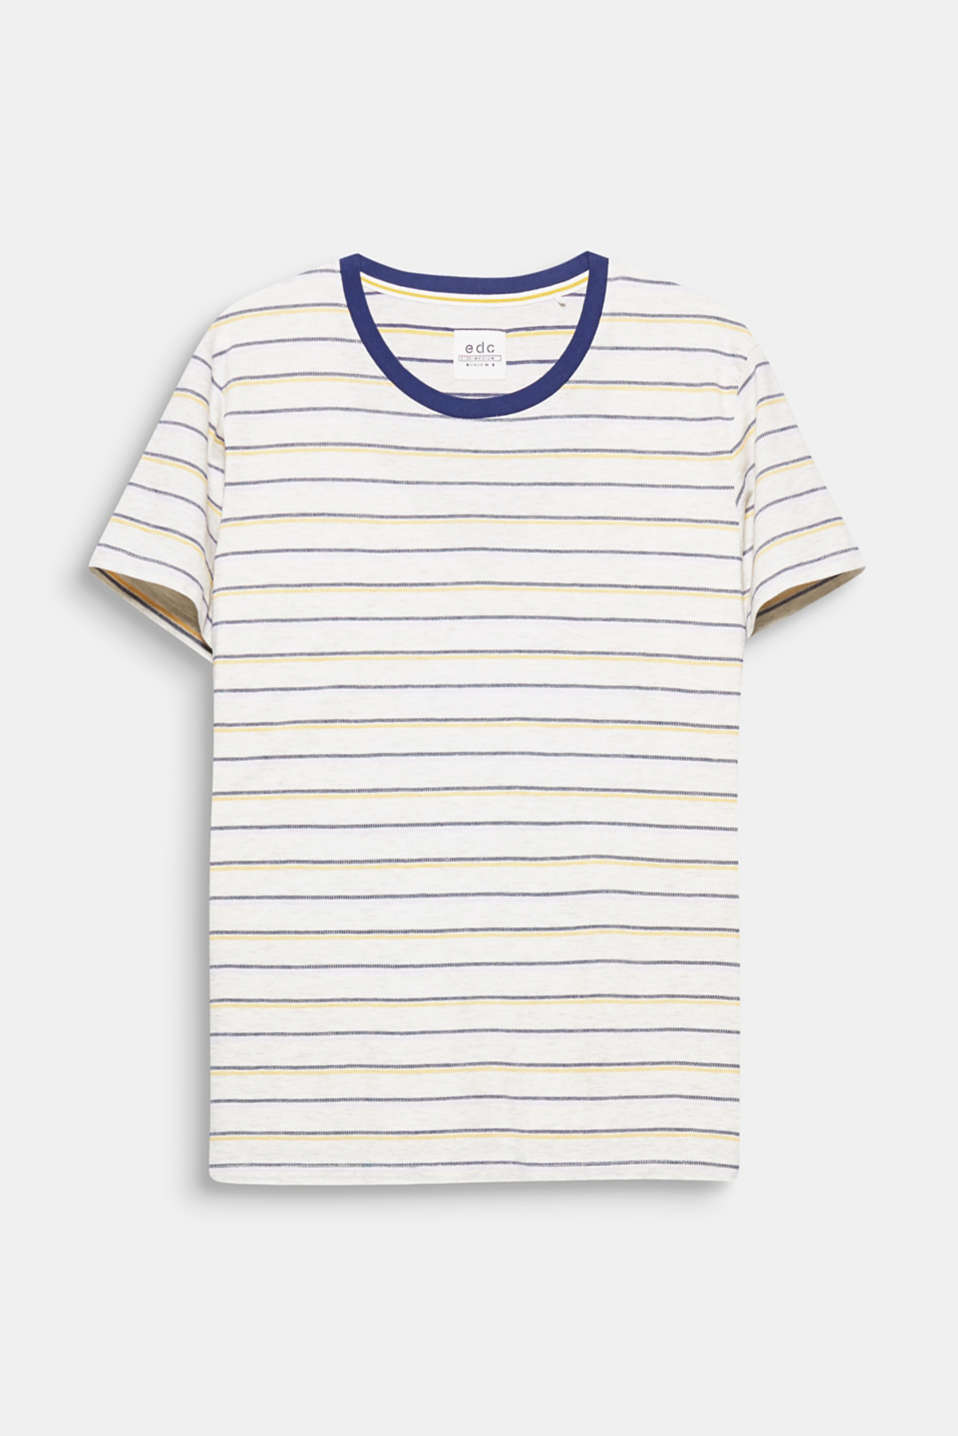 A casual look! The multi-colour striped look gives this T-shirt its stand-out look.